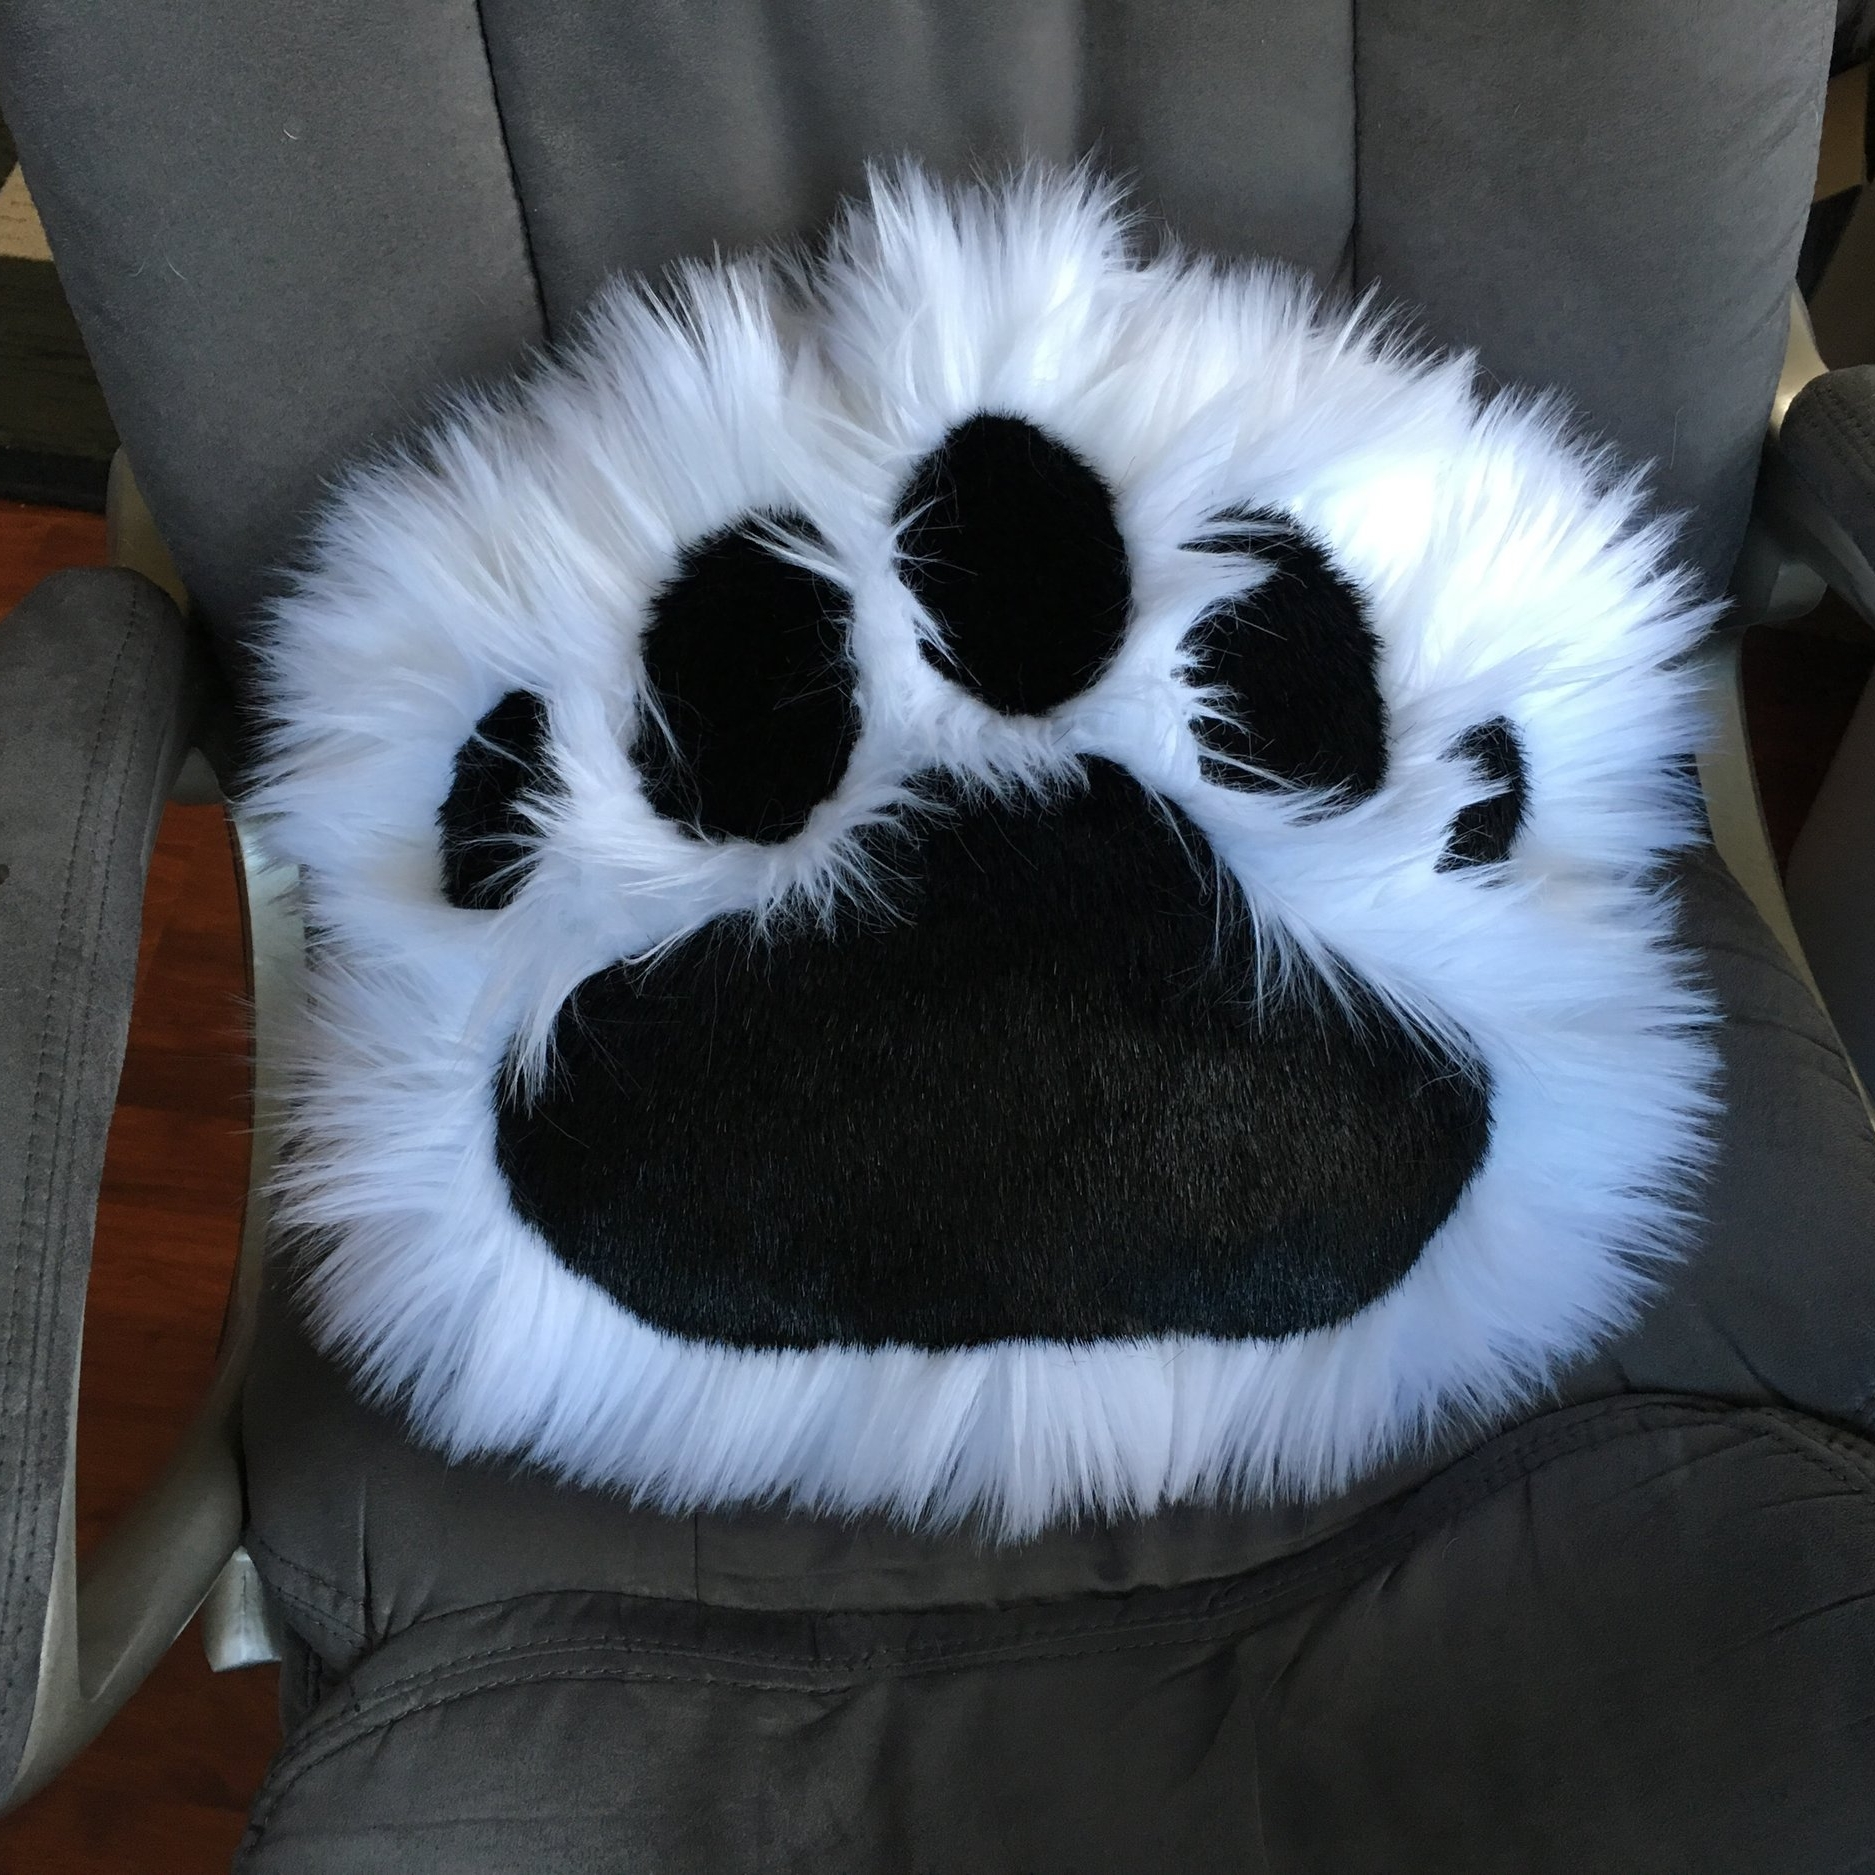 Custom Shaped Pillows Starting at $60